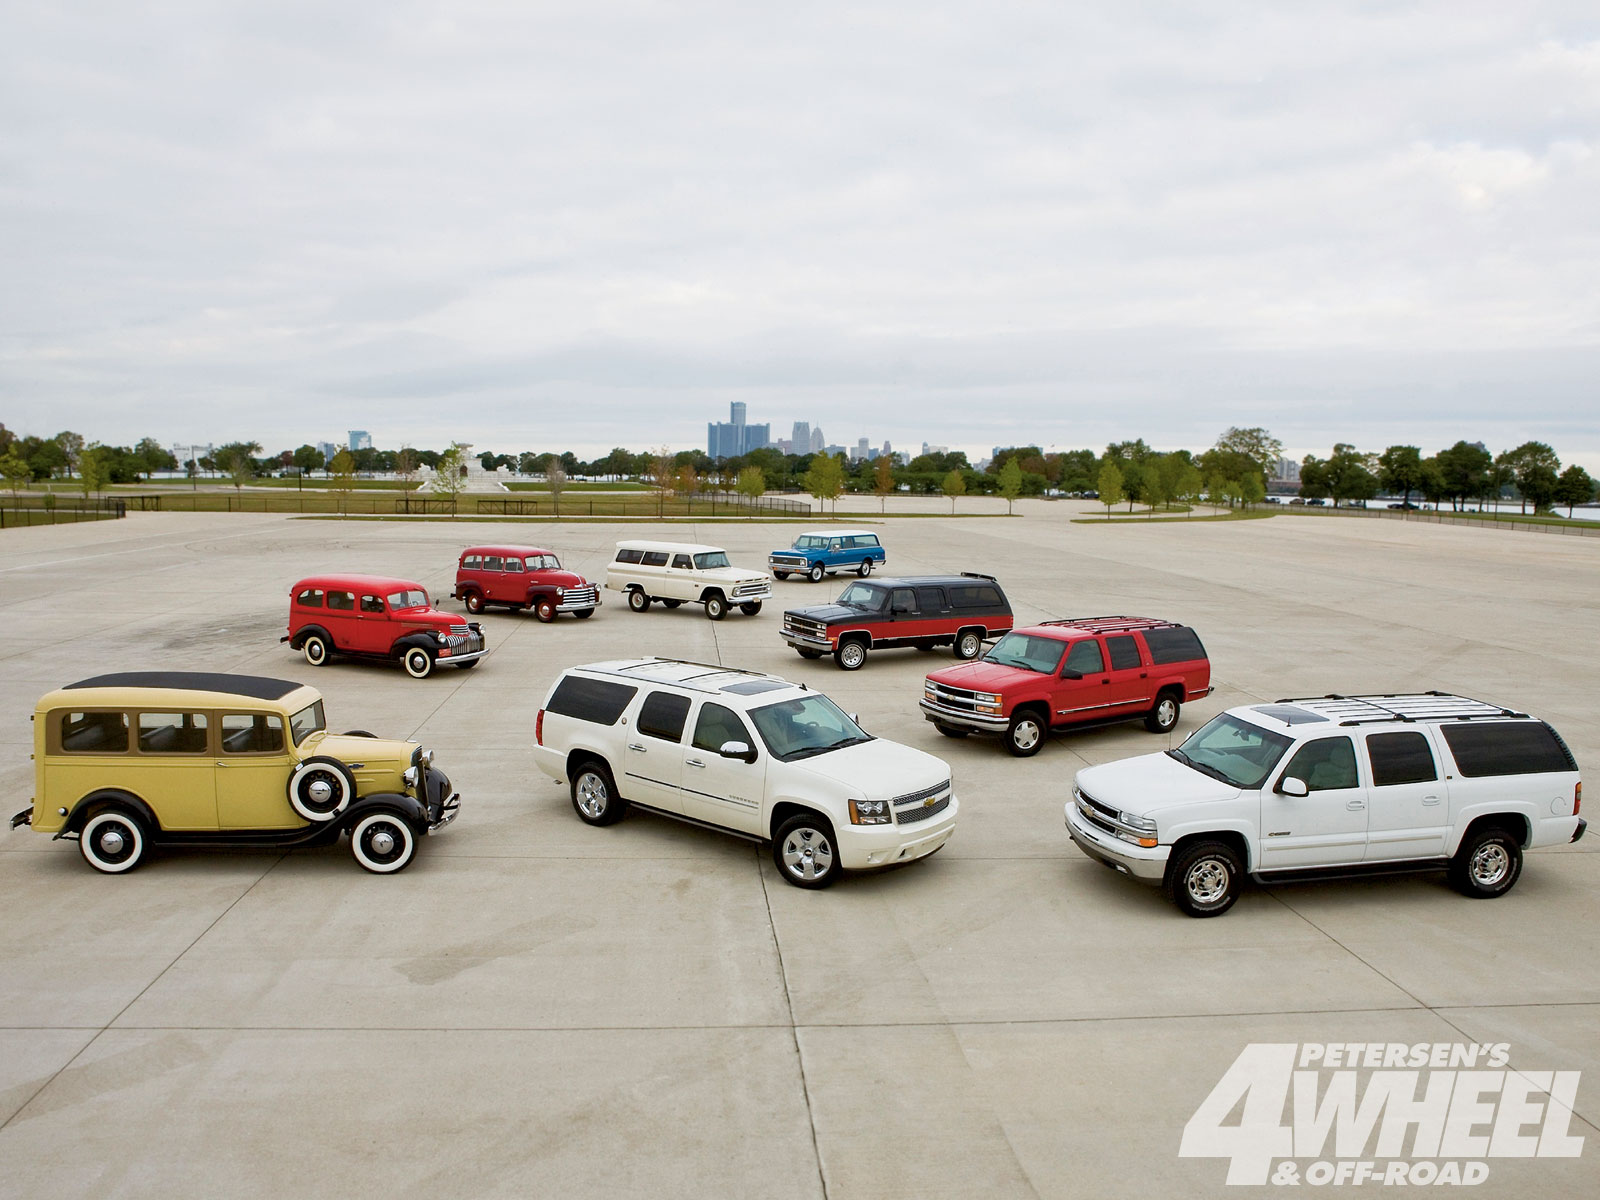 131 1101 Chevy Suburban The Legend 75 Year Of Suburbans model Line Up Photo 35027871